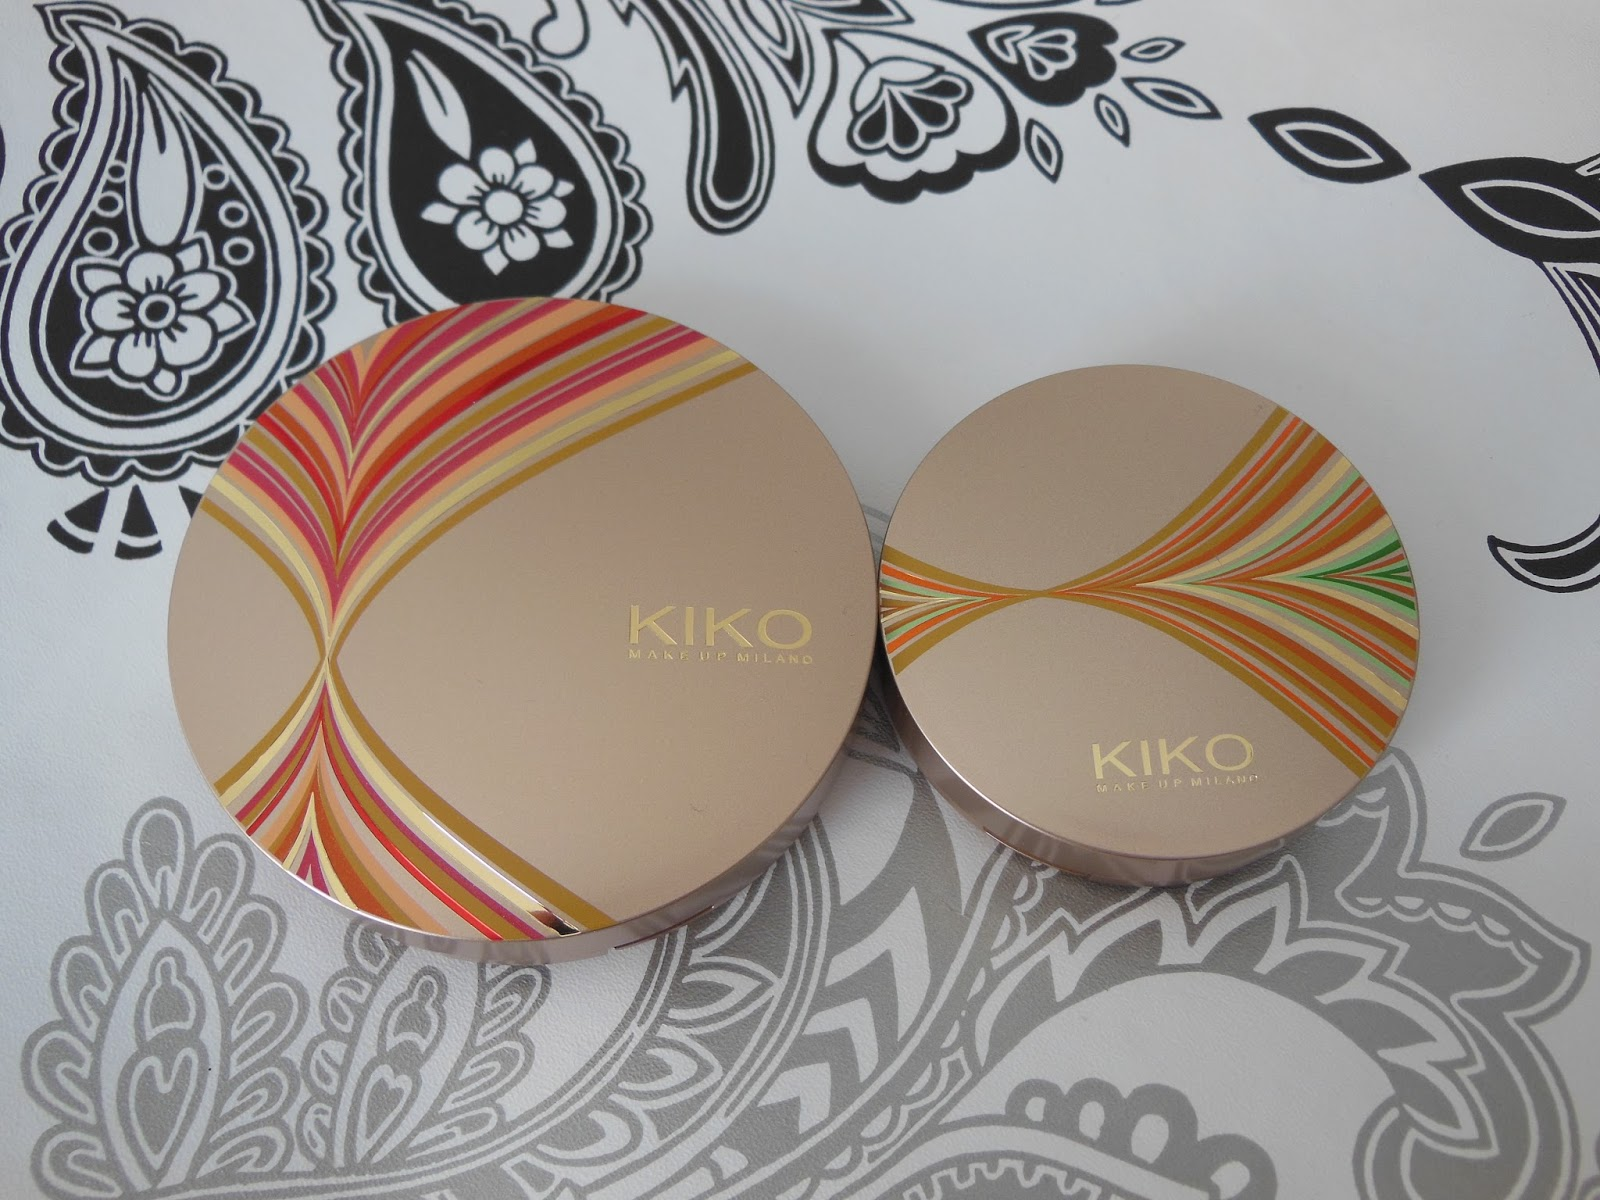 Kiko life in rio collection sun lovers blusher and bronzer